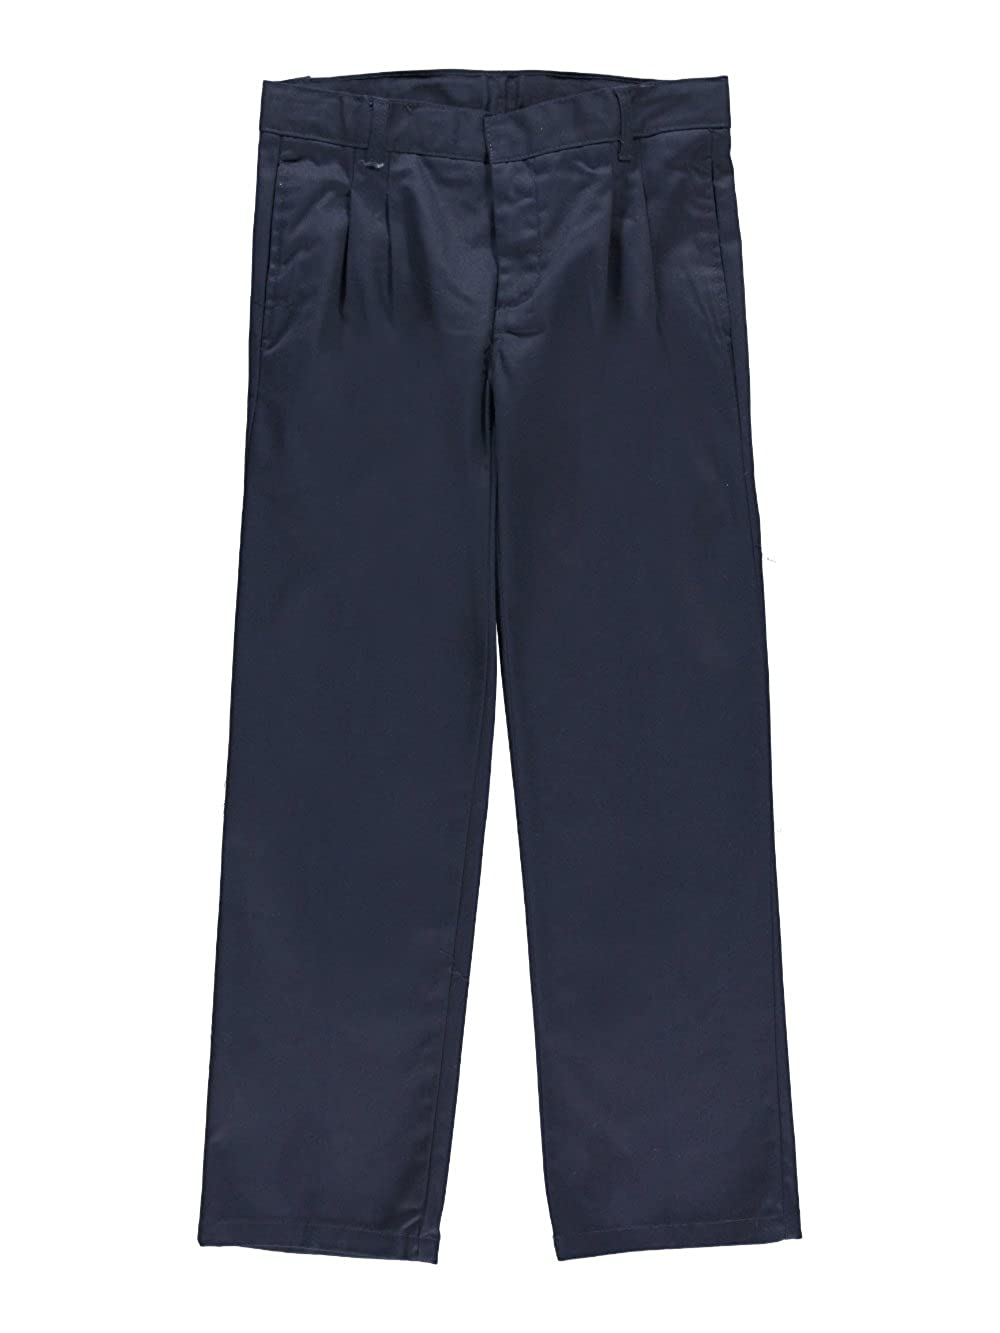 French Toast Adjustable Waist Double Knee Pant